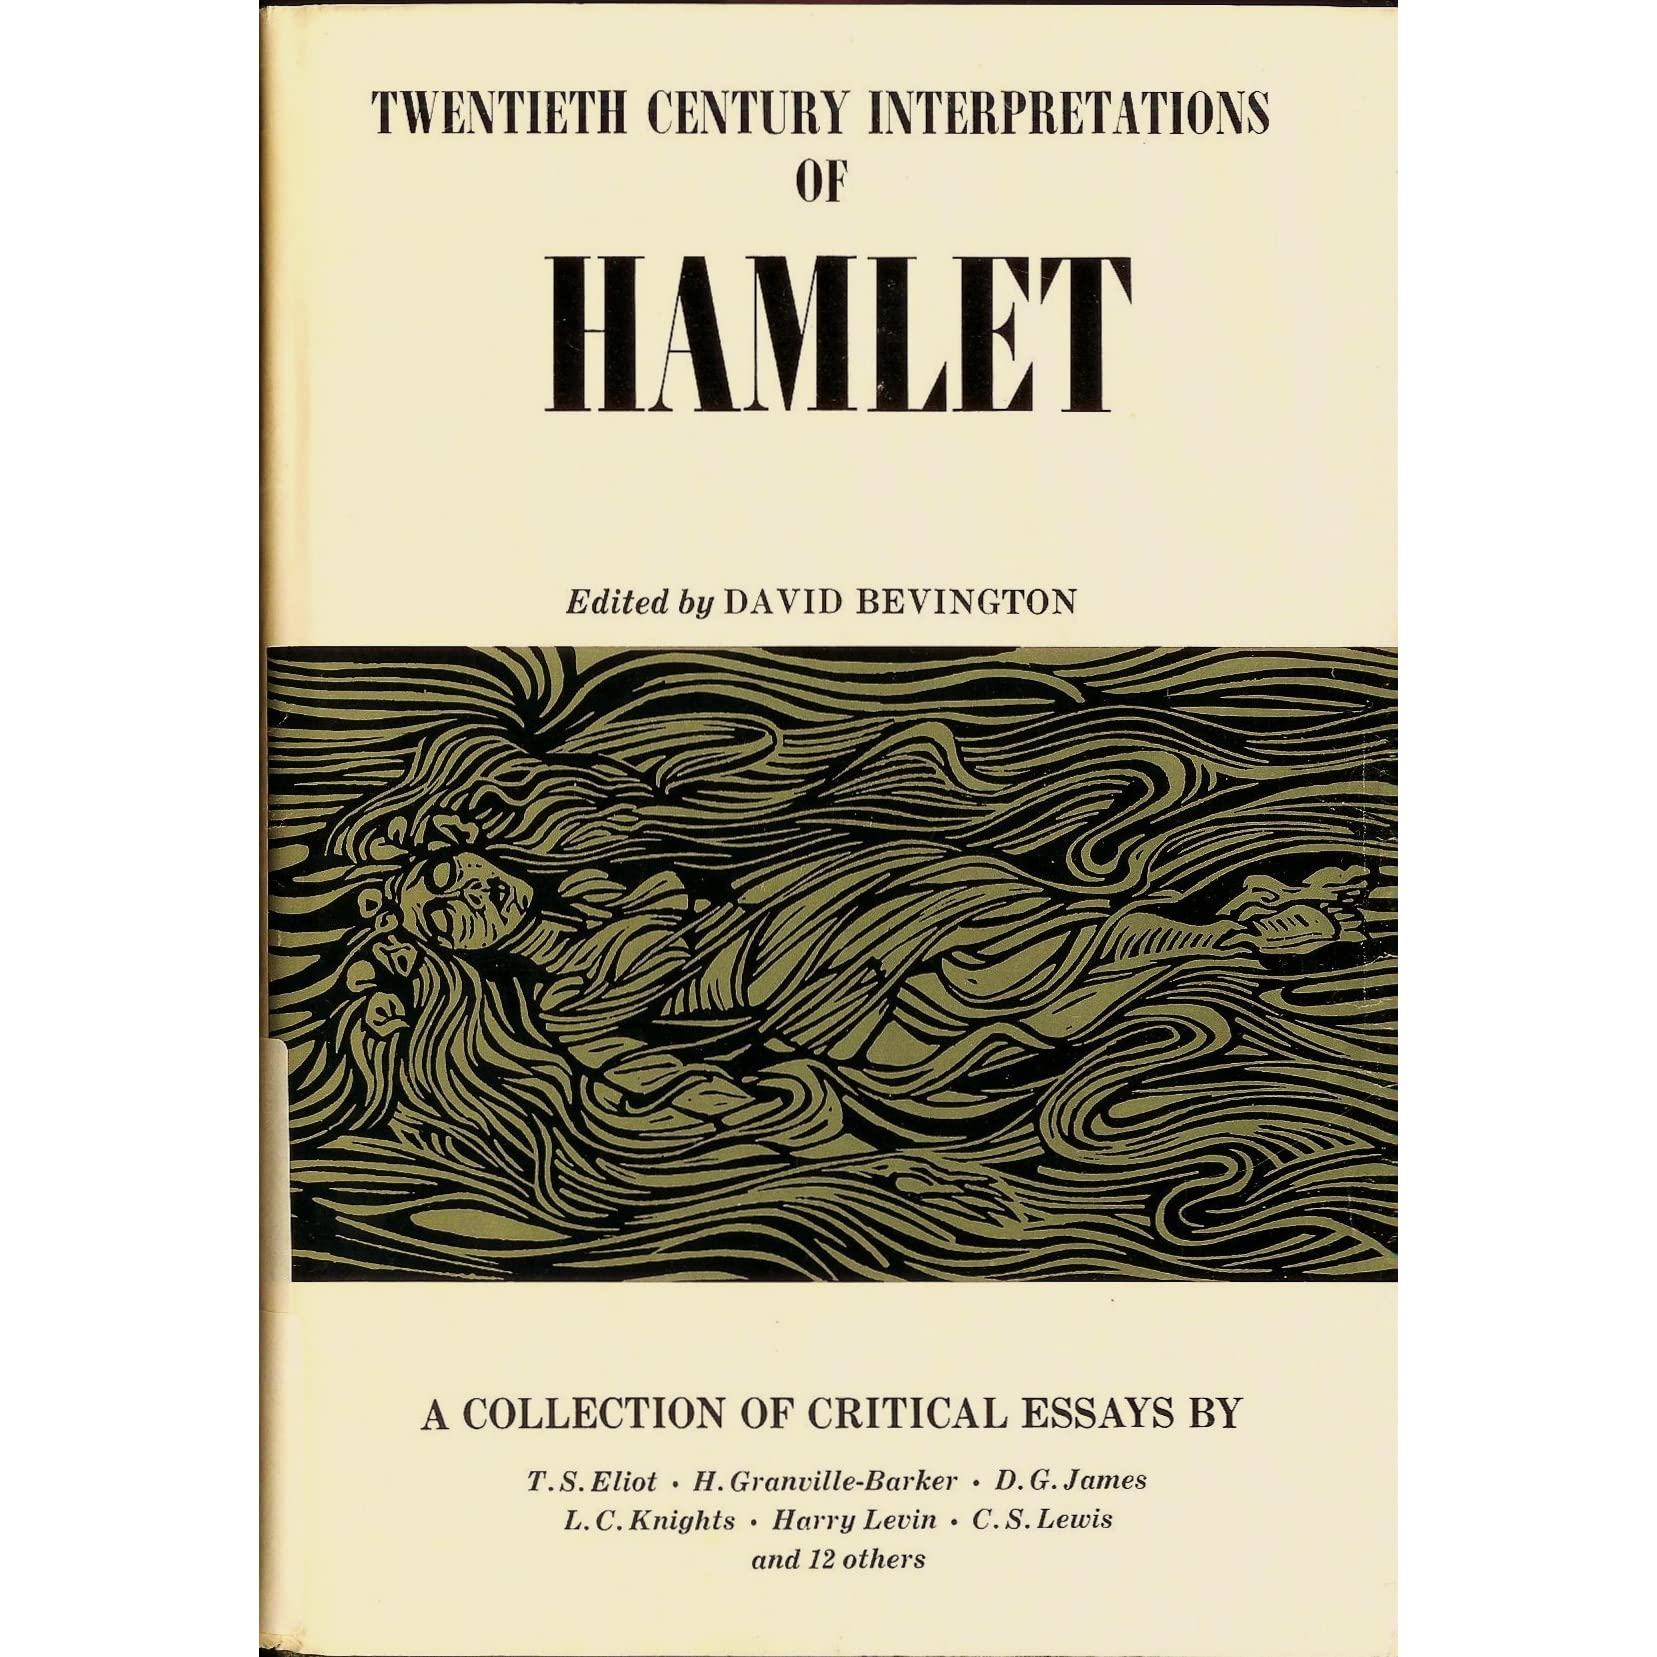 hamlet interpretation essays Free essay: hamlet by shakespeare is a very wonderfully written book that contains so many literary elements and motifs throughout it that it is still one of.